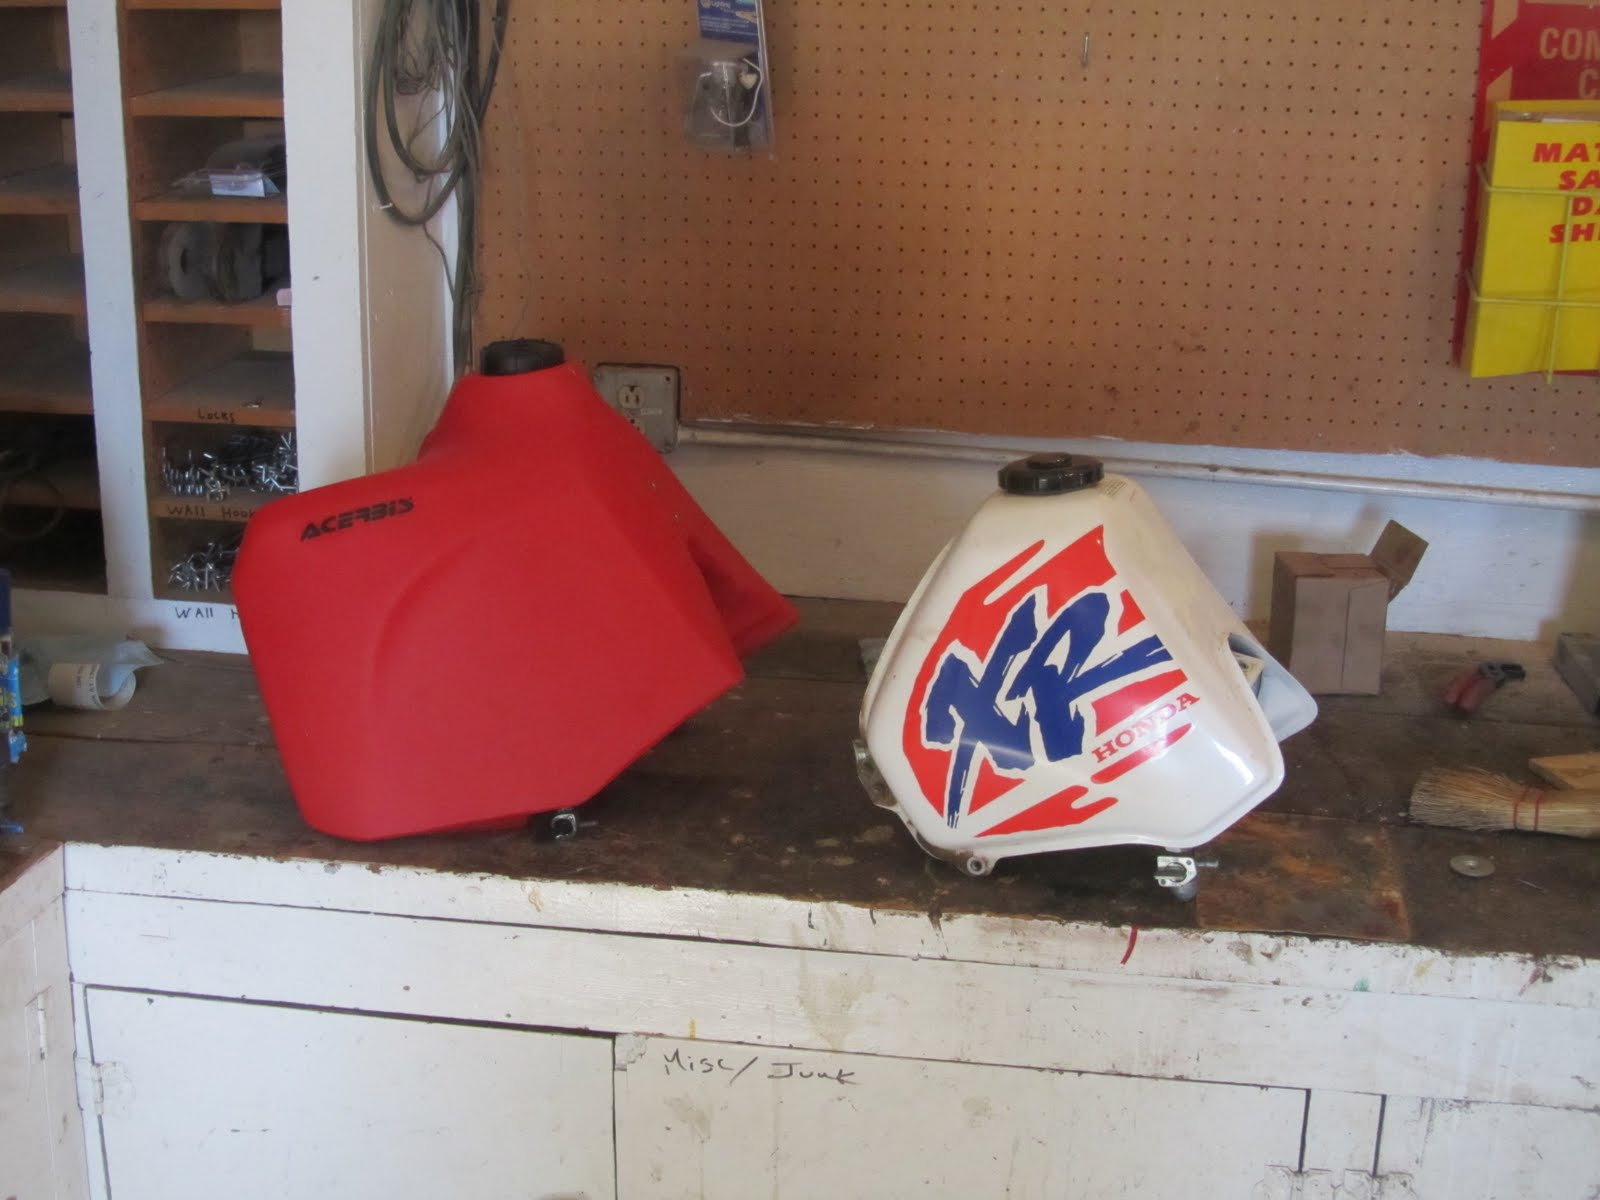 Man Cave With Tank : Quest of the man cave: xr650l acerbis 5.8 gas tank project